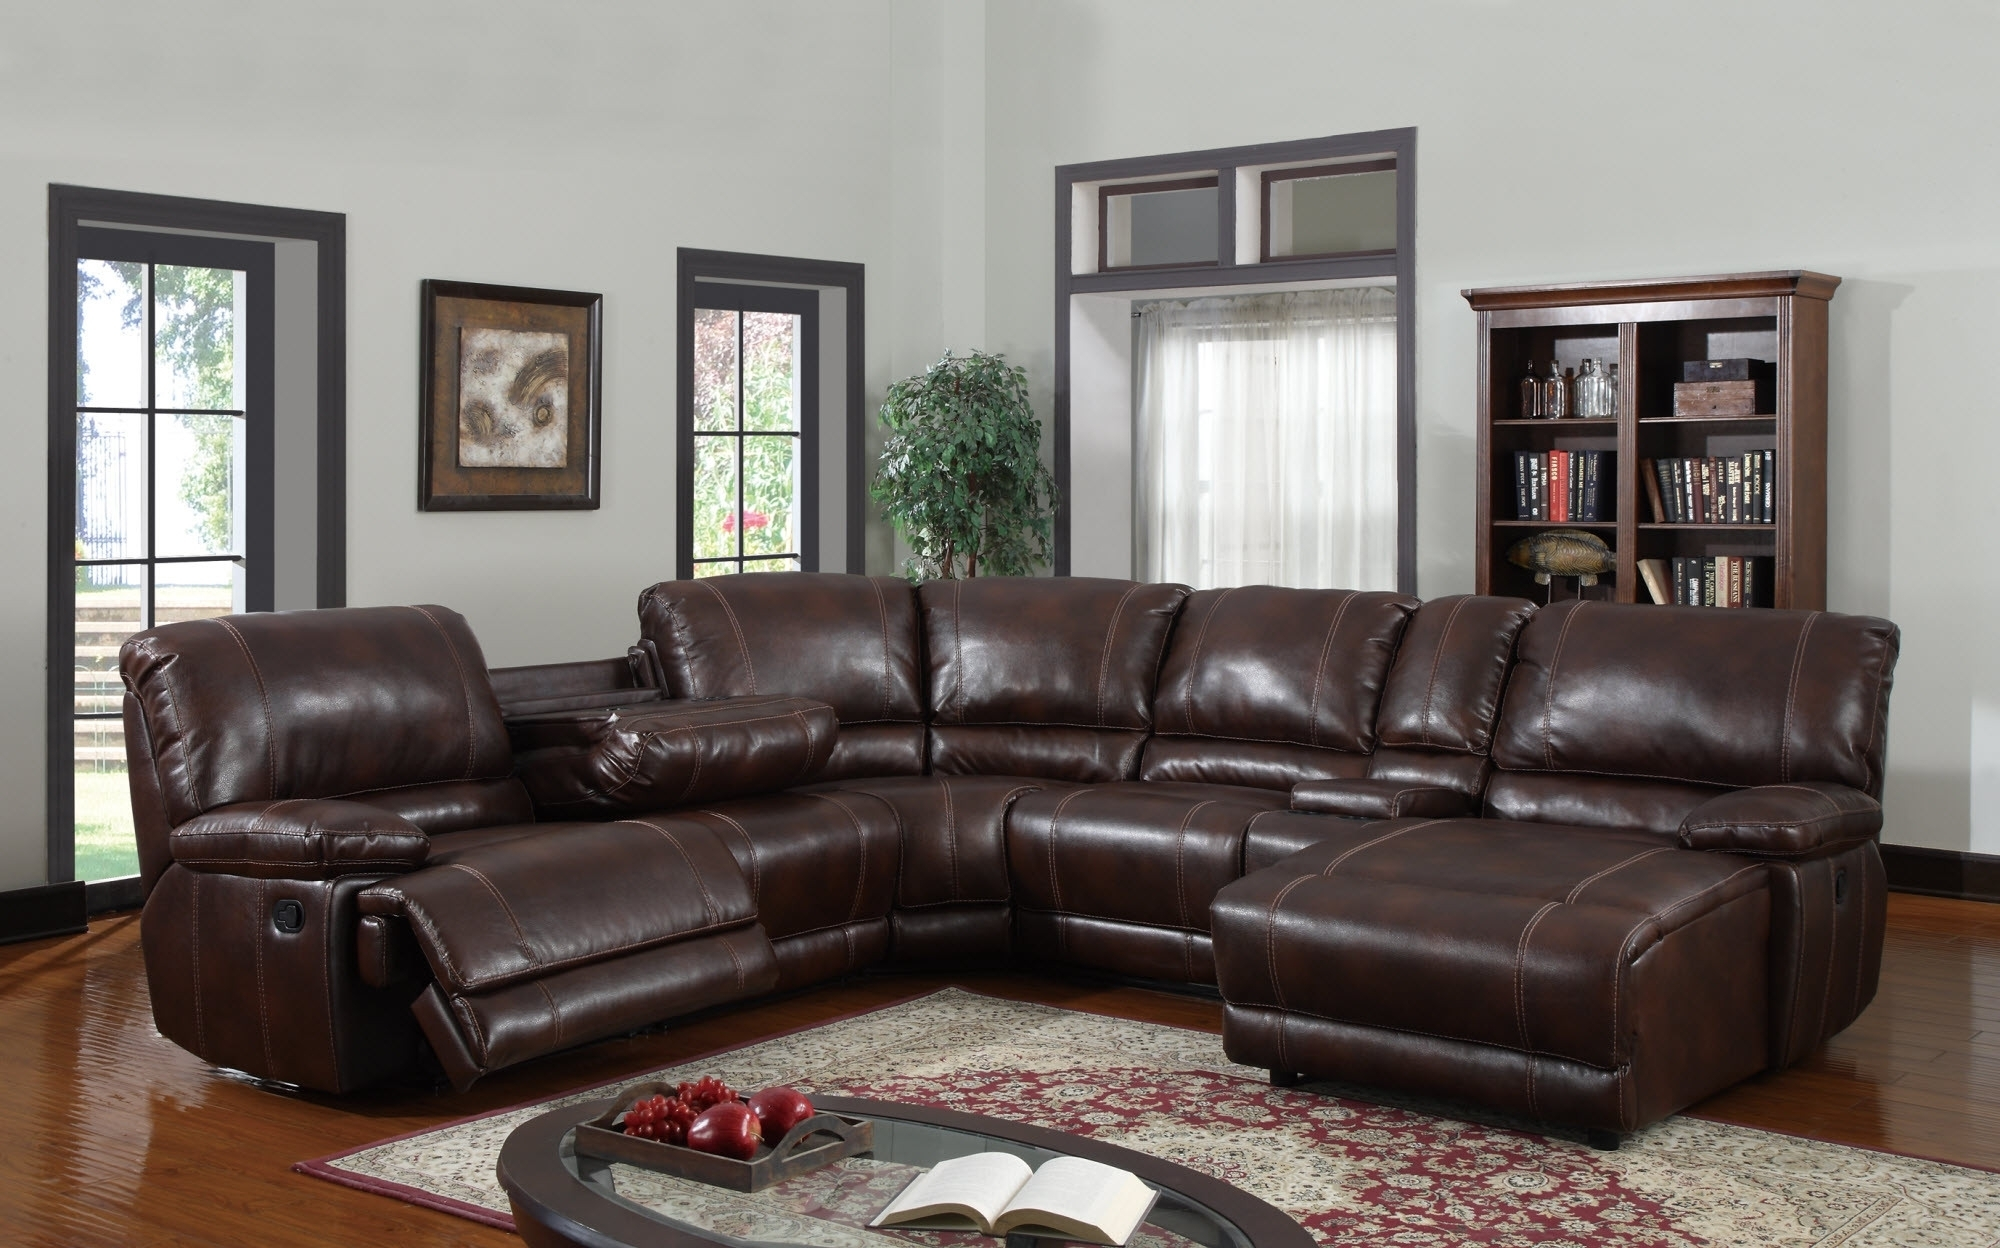 6 Piece Sectional Sofa Leather • Sectional Sofa In 6 Piece Leather Sectional Sofas (Photo 2 of 10)